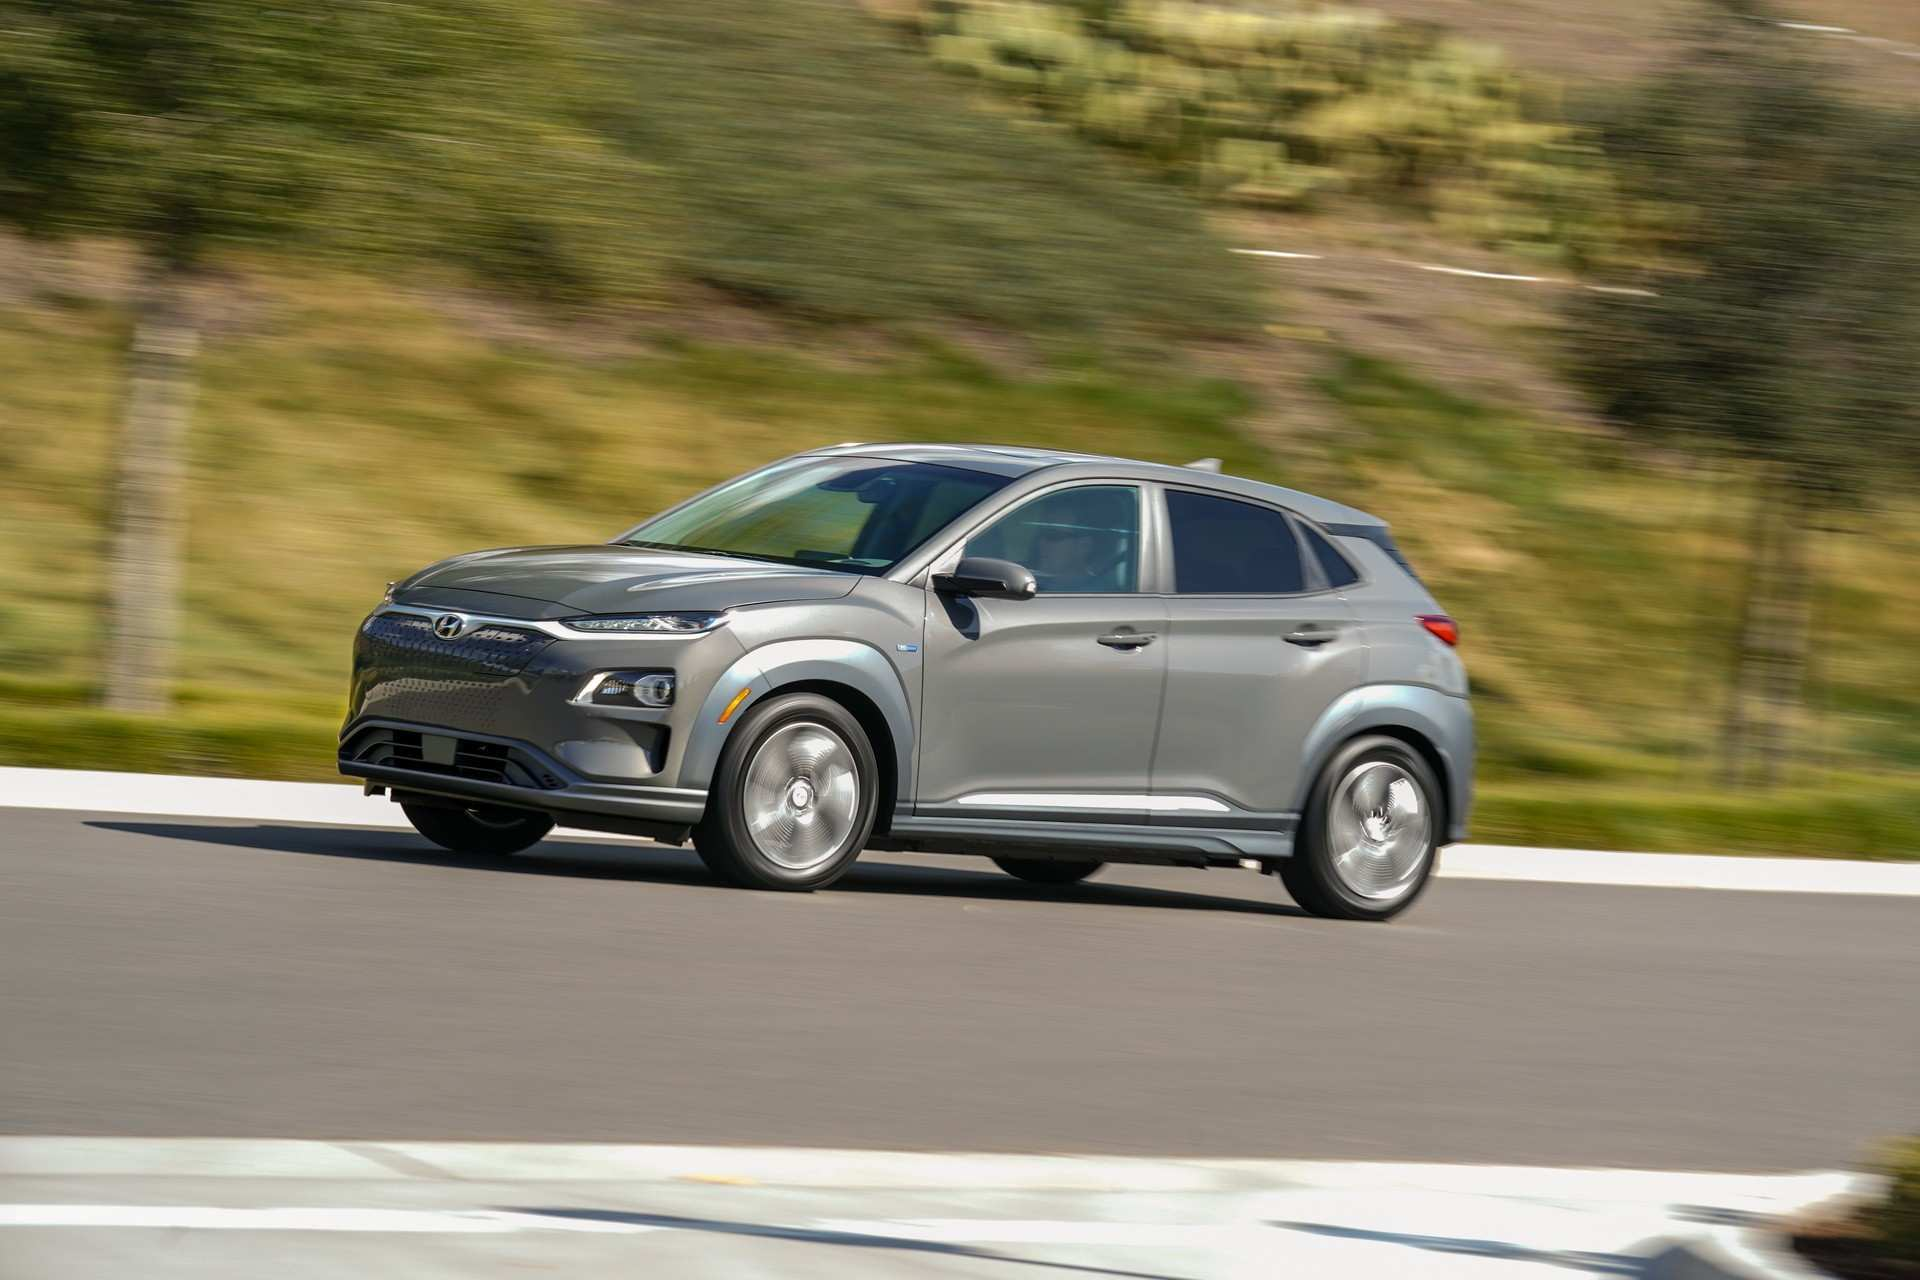 74 All New Hyundai Kona Electric 2020 Price Design And Review